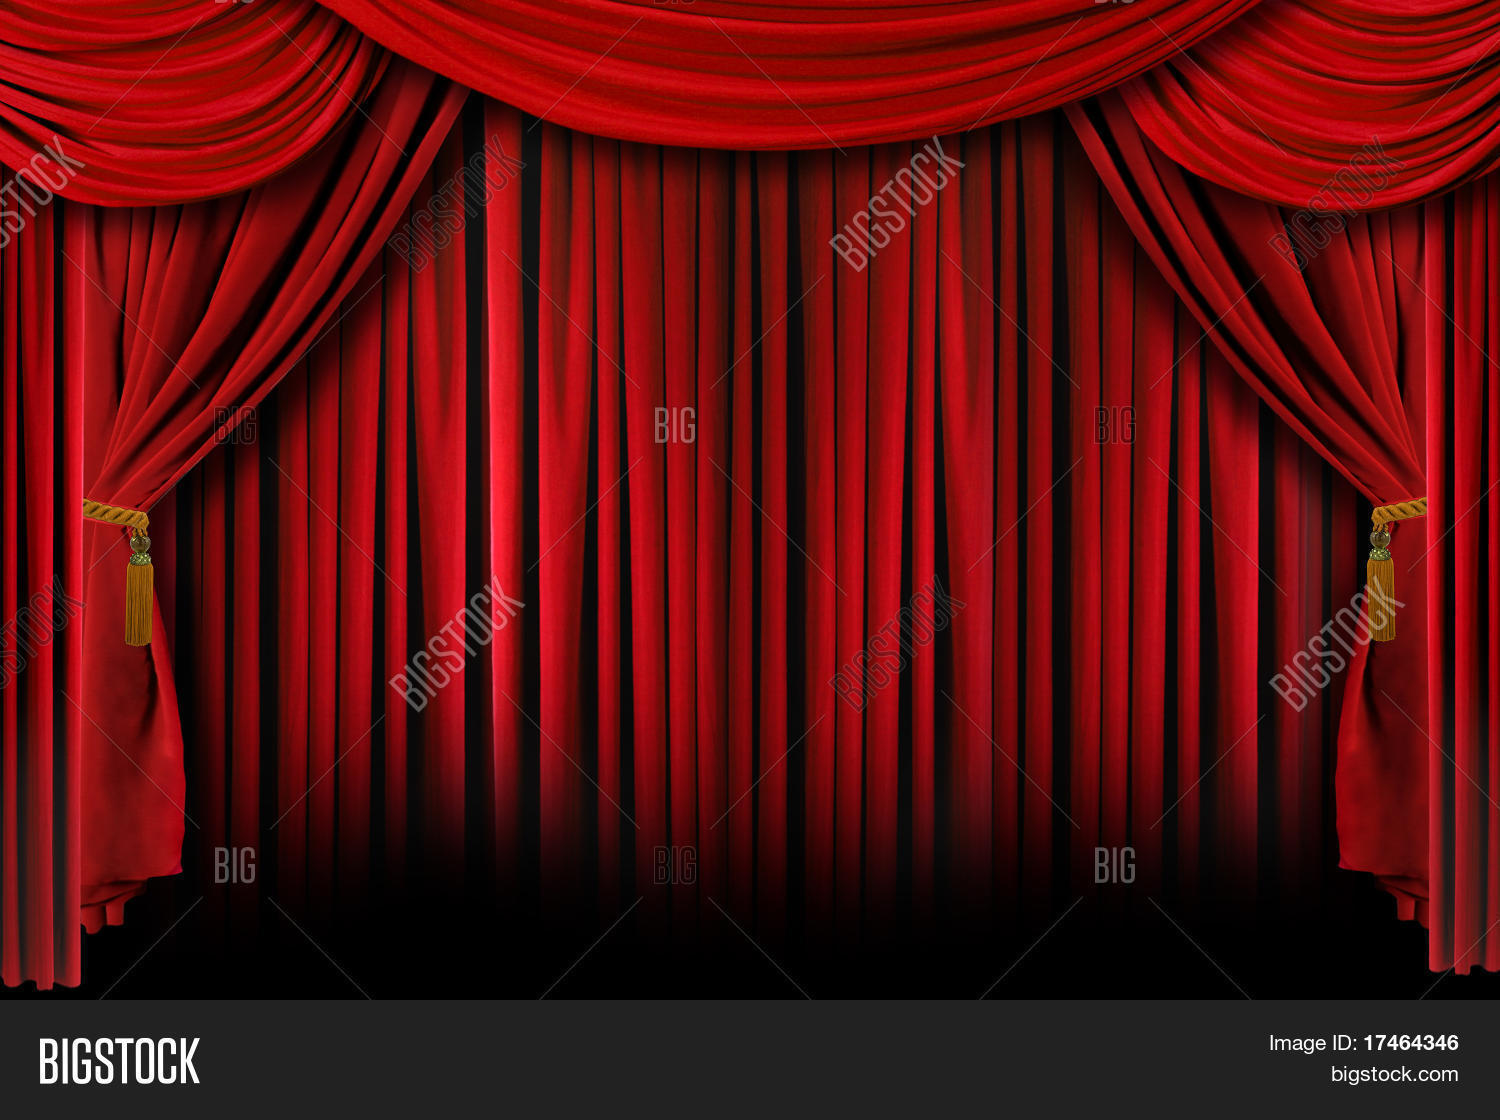 stock curtains black hafsbefymjetmbqci drapes royalty on opened storyblocks sb background harmzgtym pm red image theater